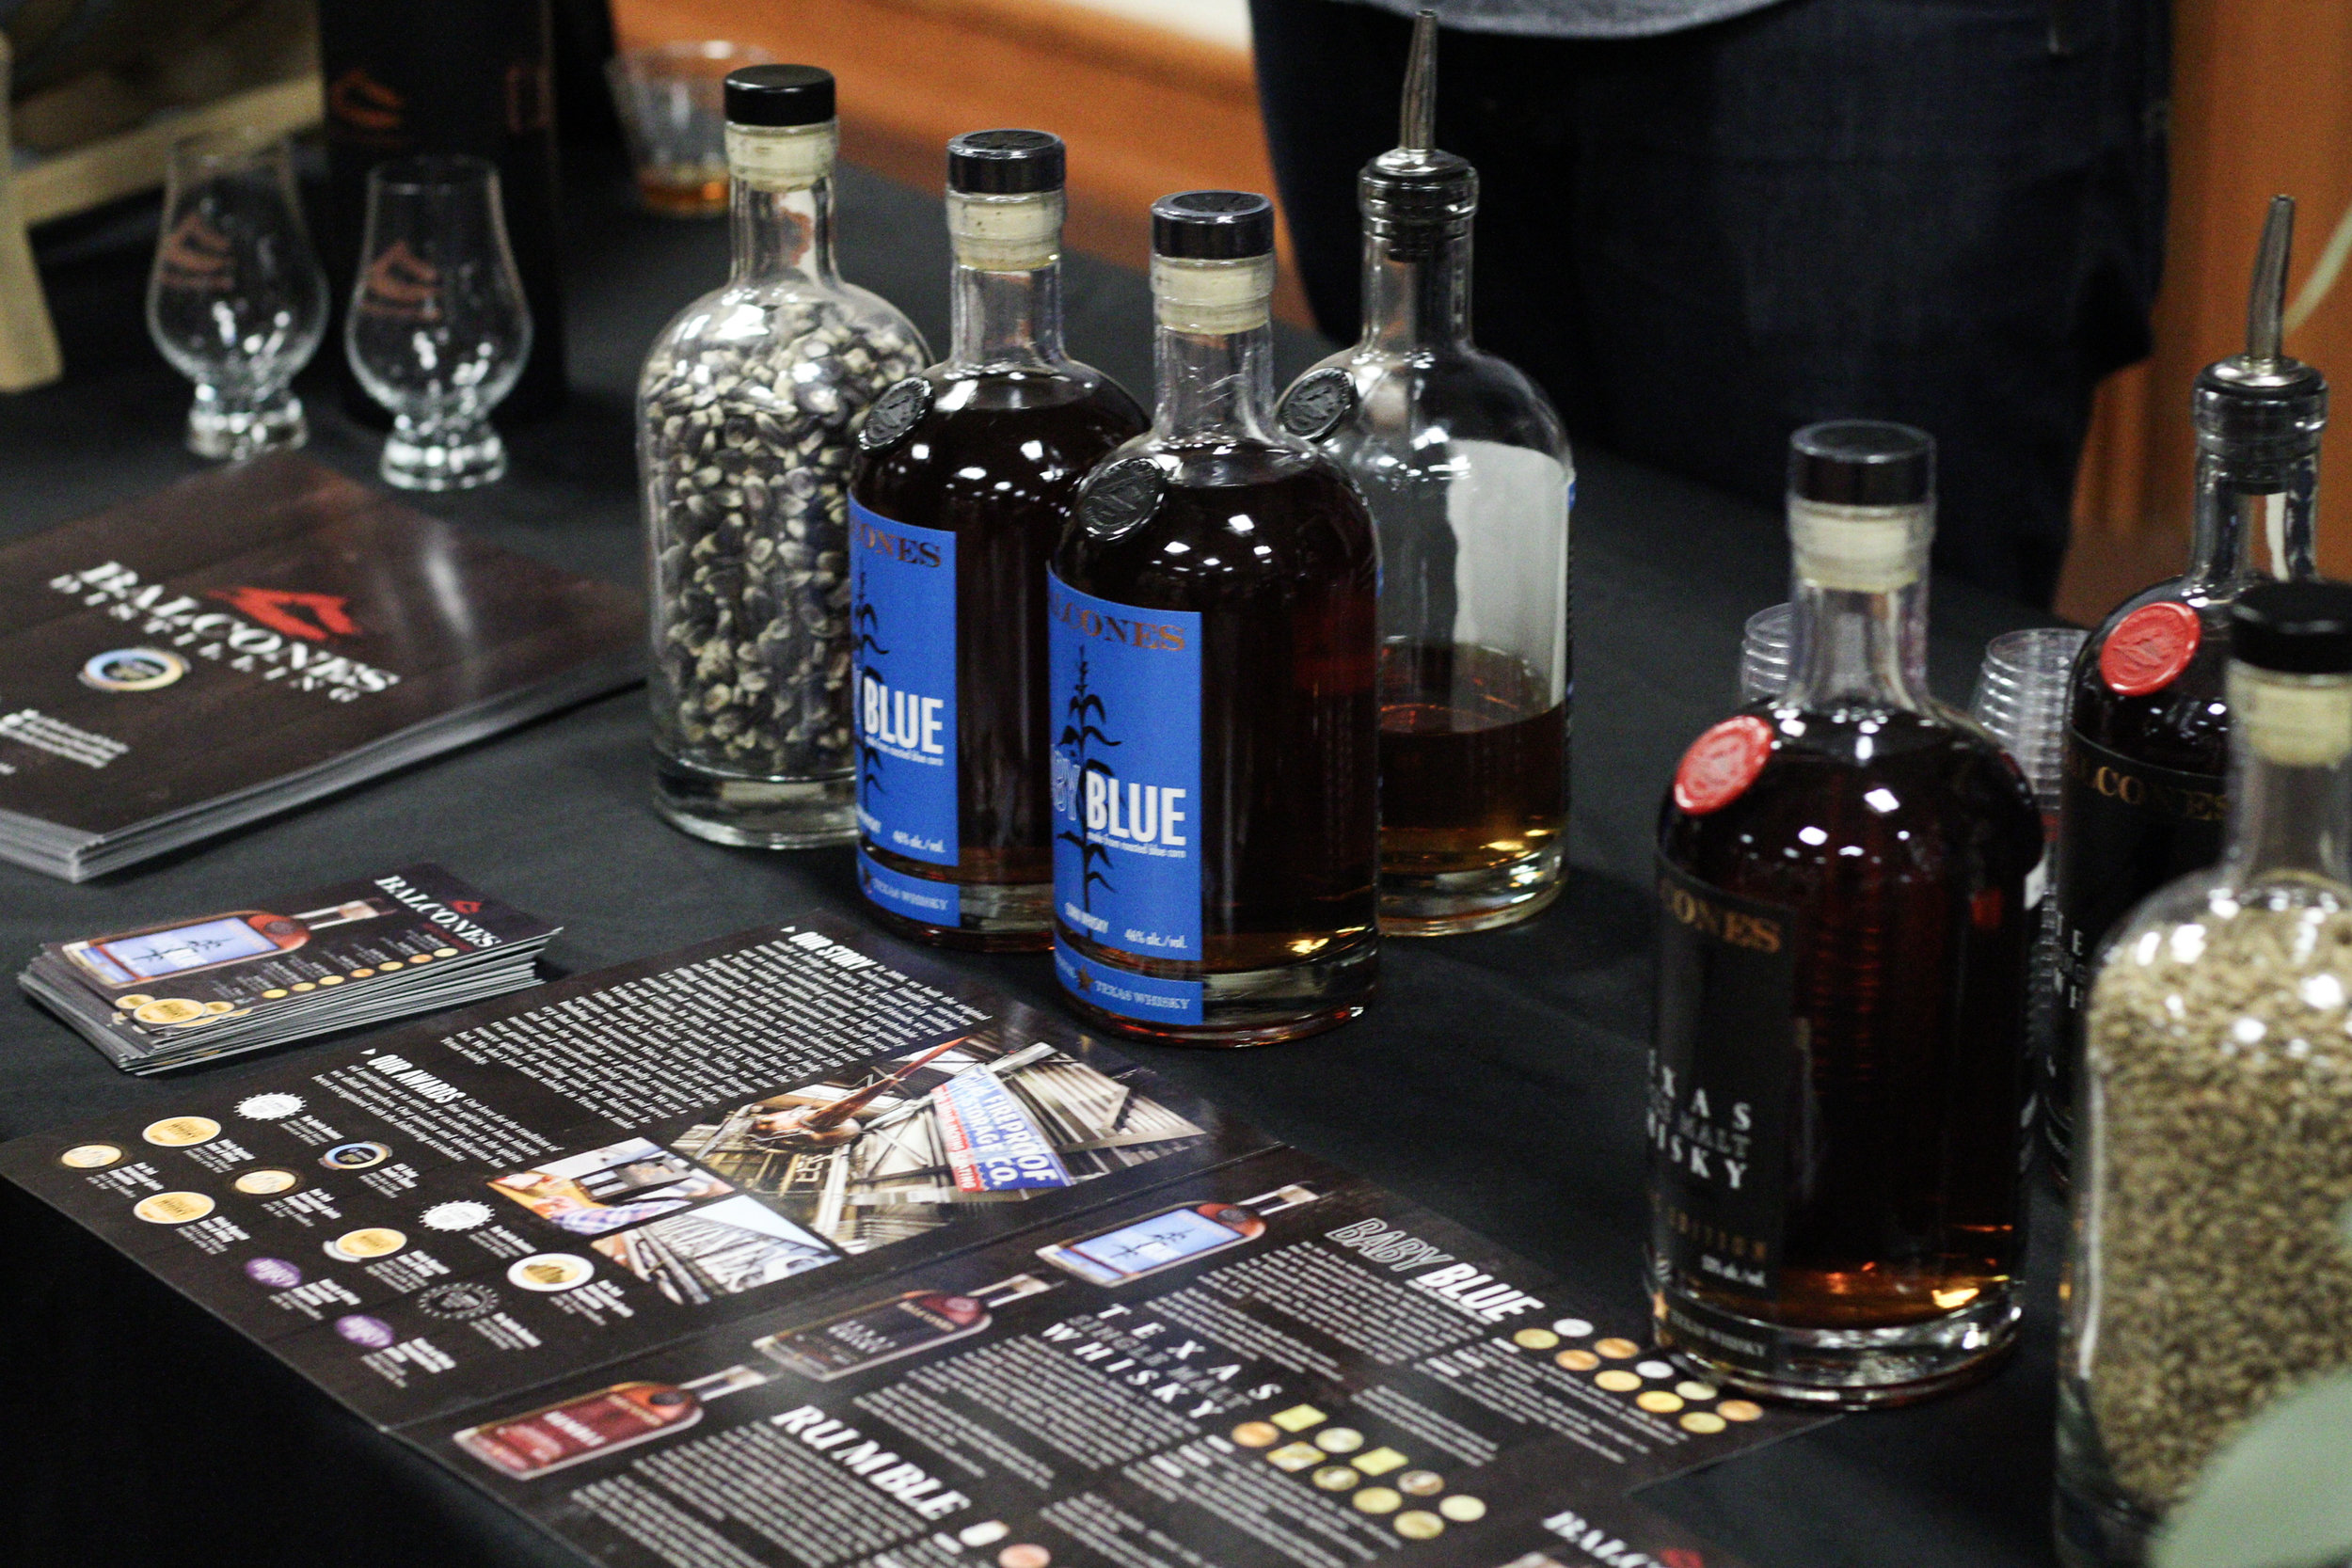 Balcones Distillery provides samplings of its whiskey products to exhibition guests.